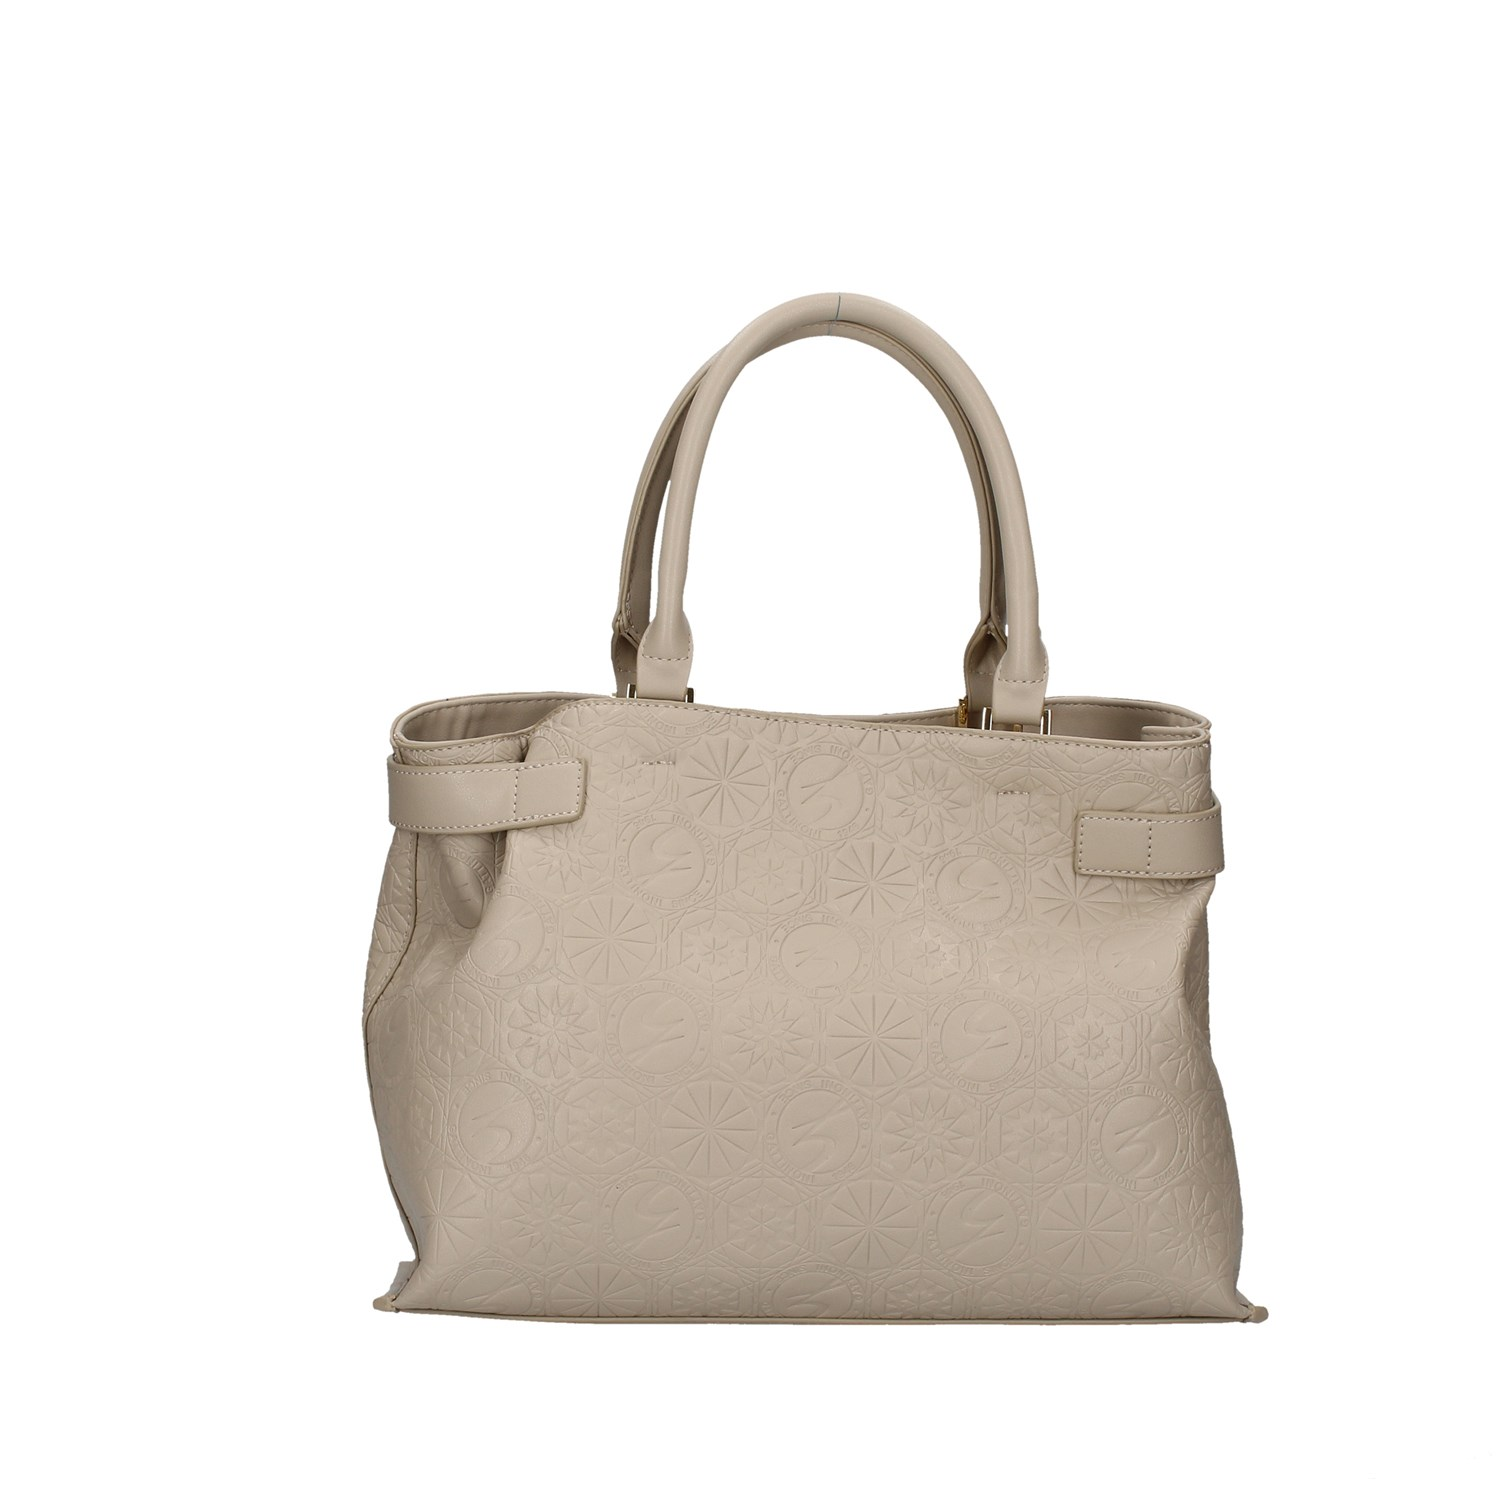 Gattinoni Roma Bags Accessories By hand BEIGE BENJD6480WV